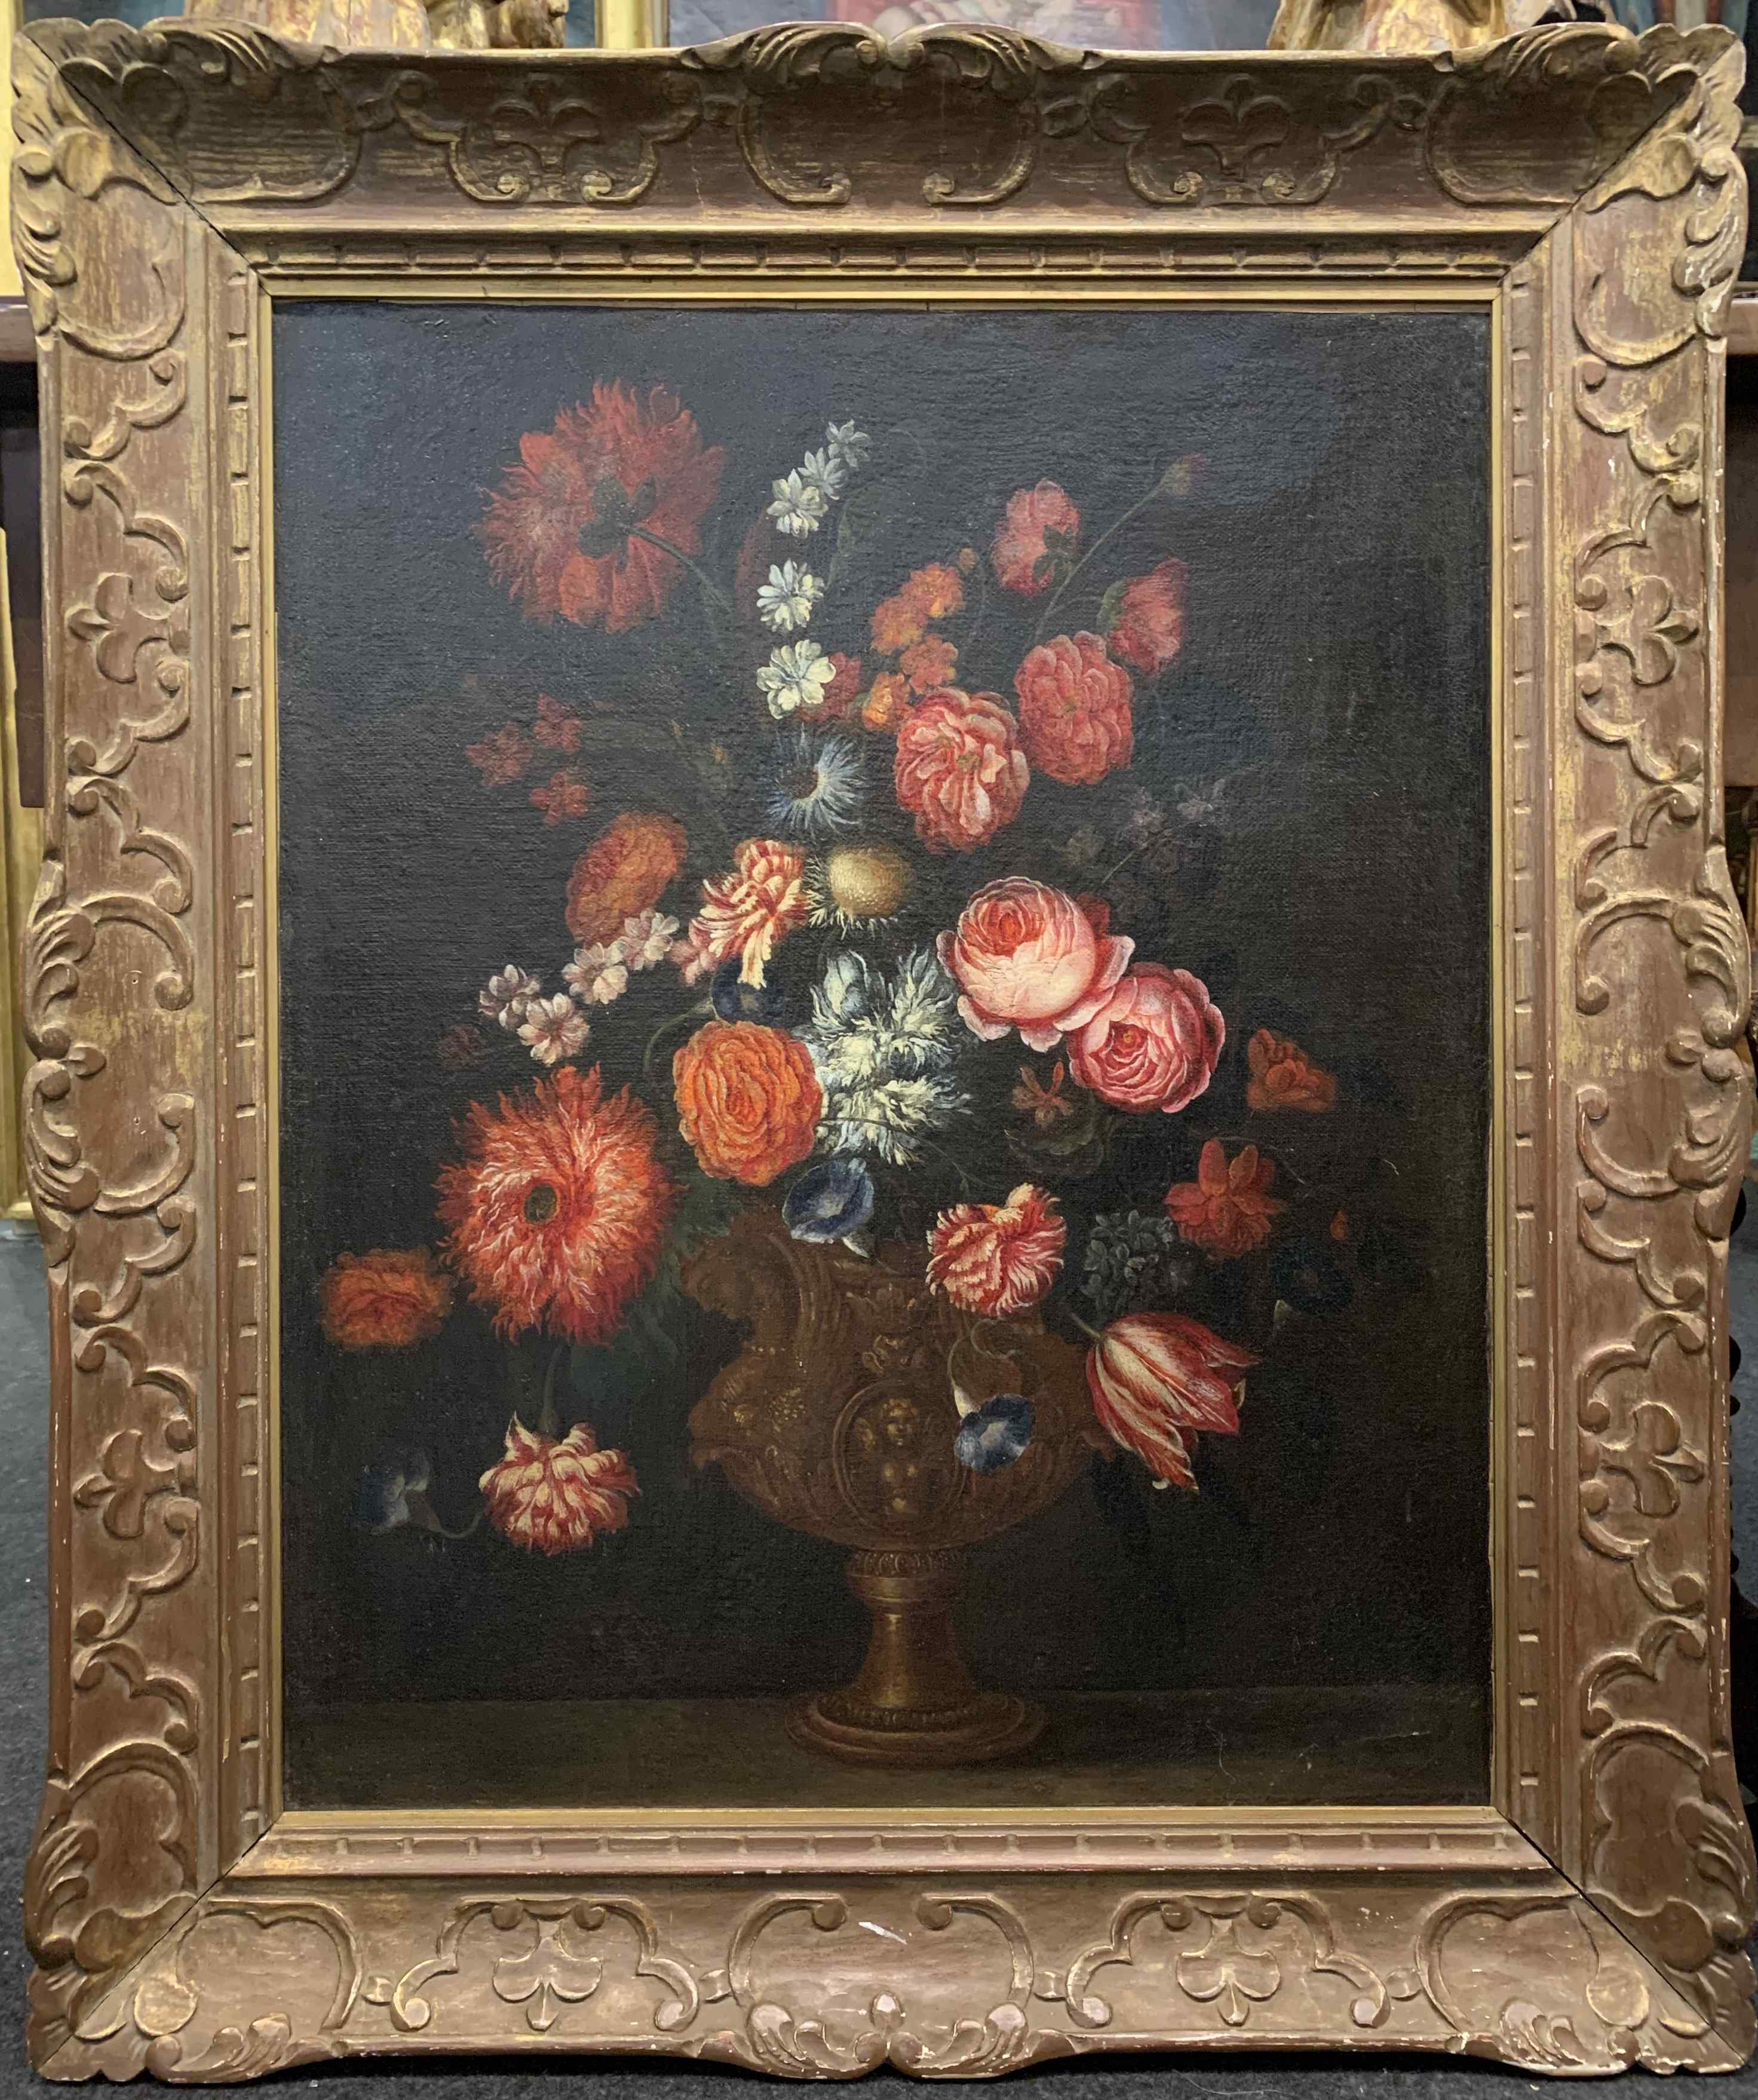 Still life with flowers. French School. The end XVII century